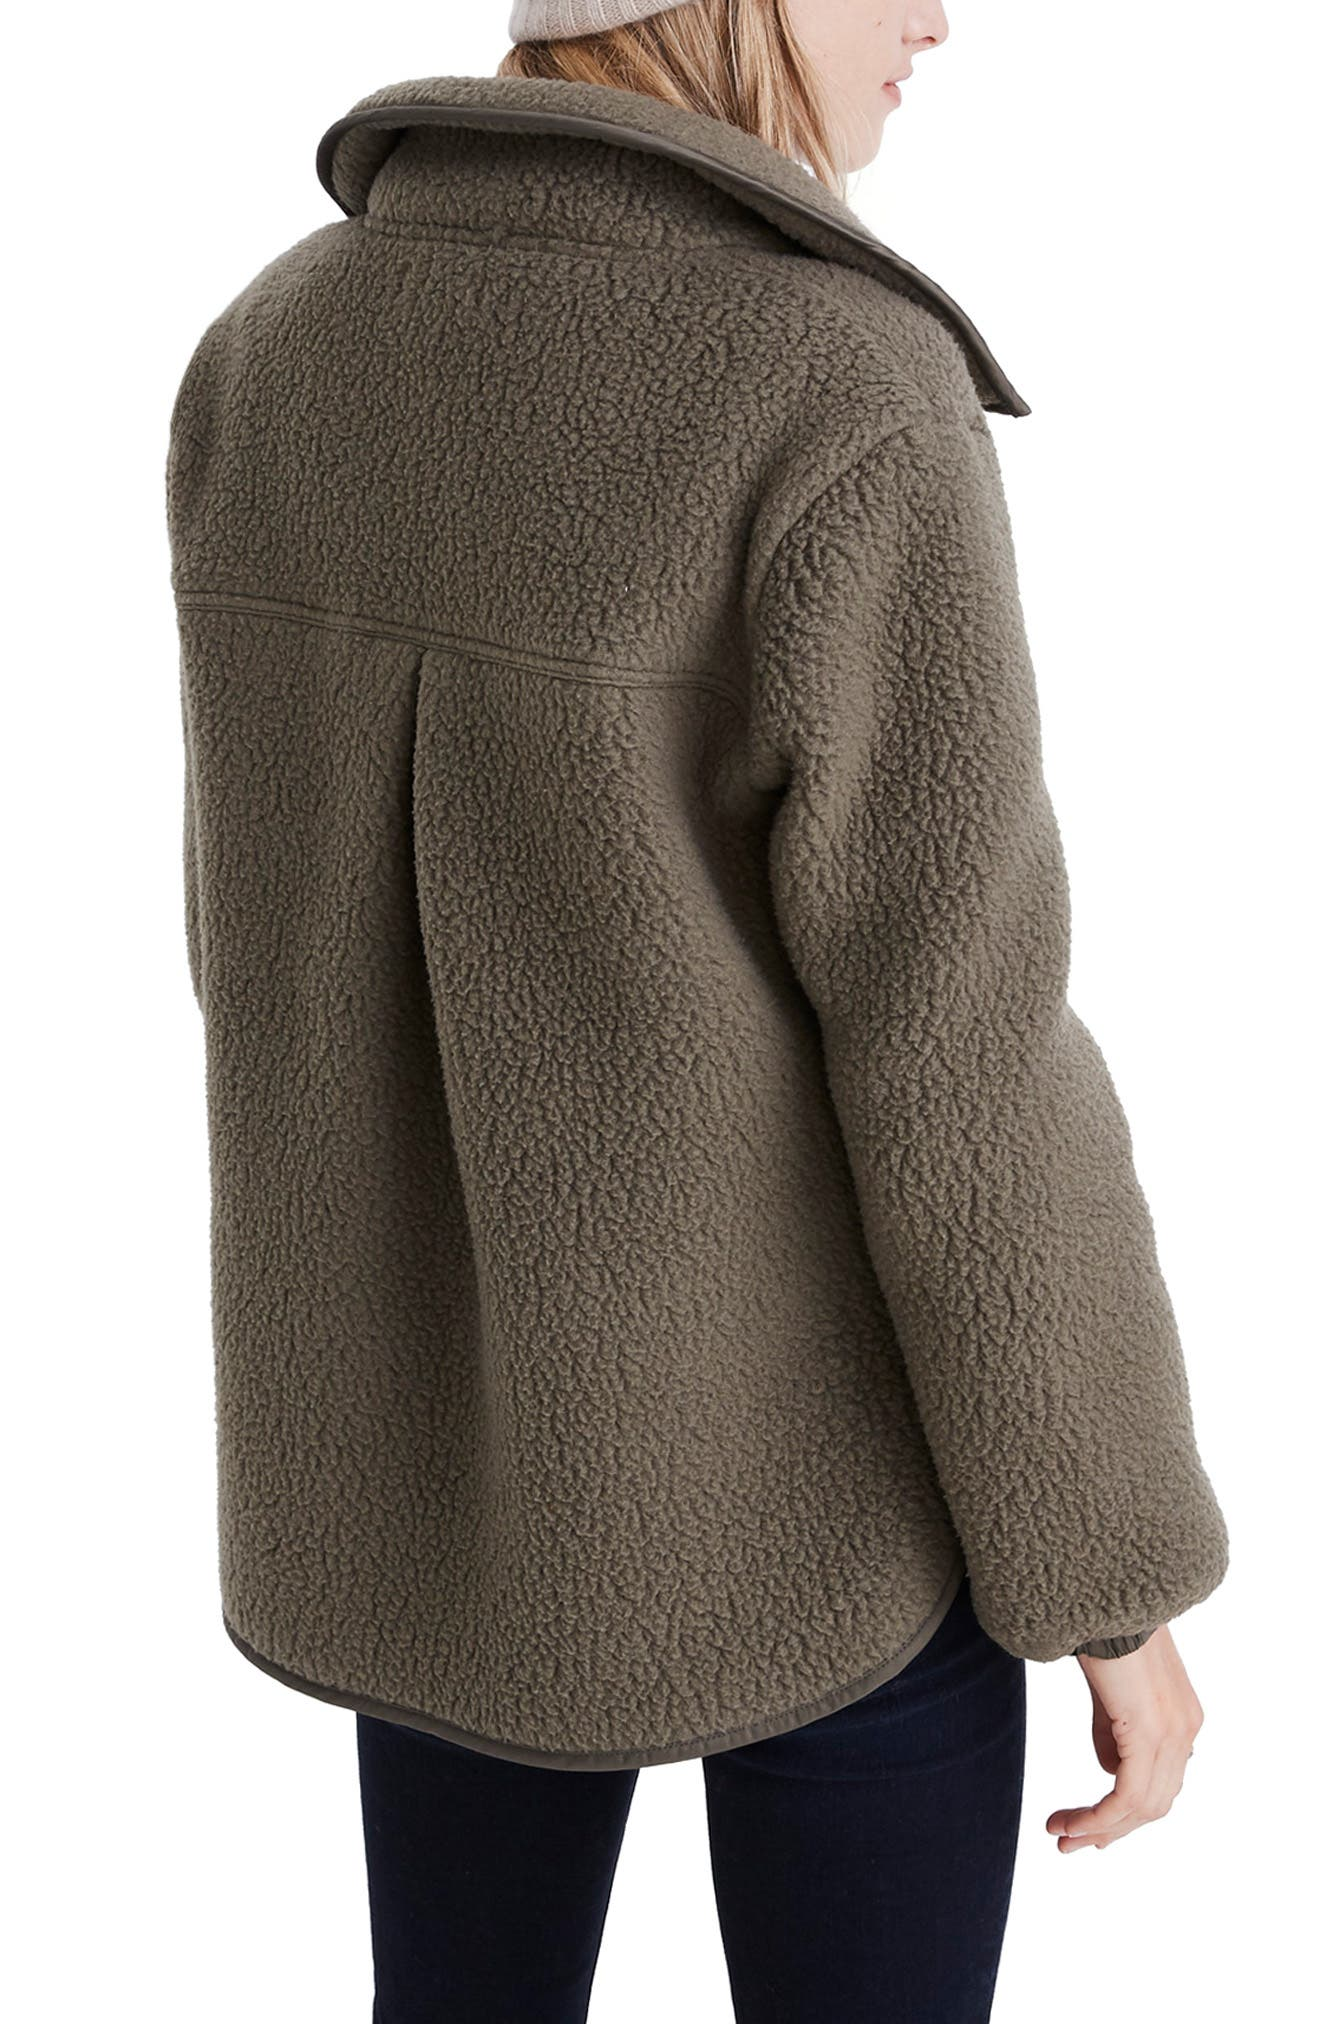 MADEWELL, Polartec<sup>®</sup> Fleece Popover Jacket, Alternate thumbnail 2, color, 300